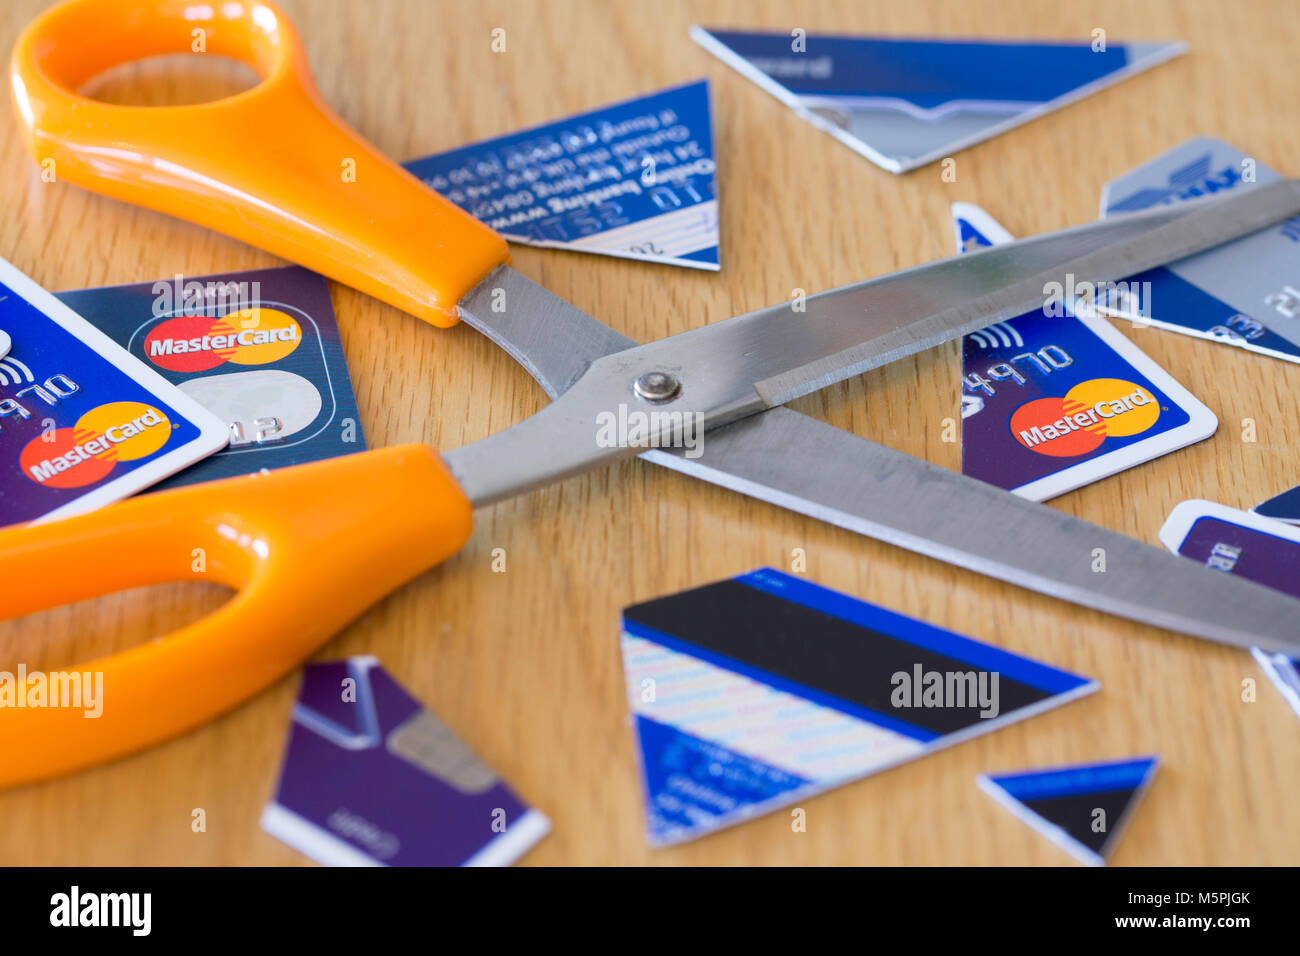 A pair of scissors in the middle of cut up credit cards - credit card debt concept - Stock Image